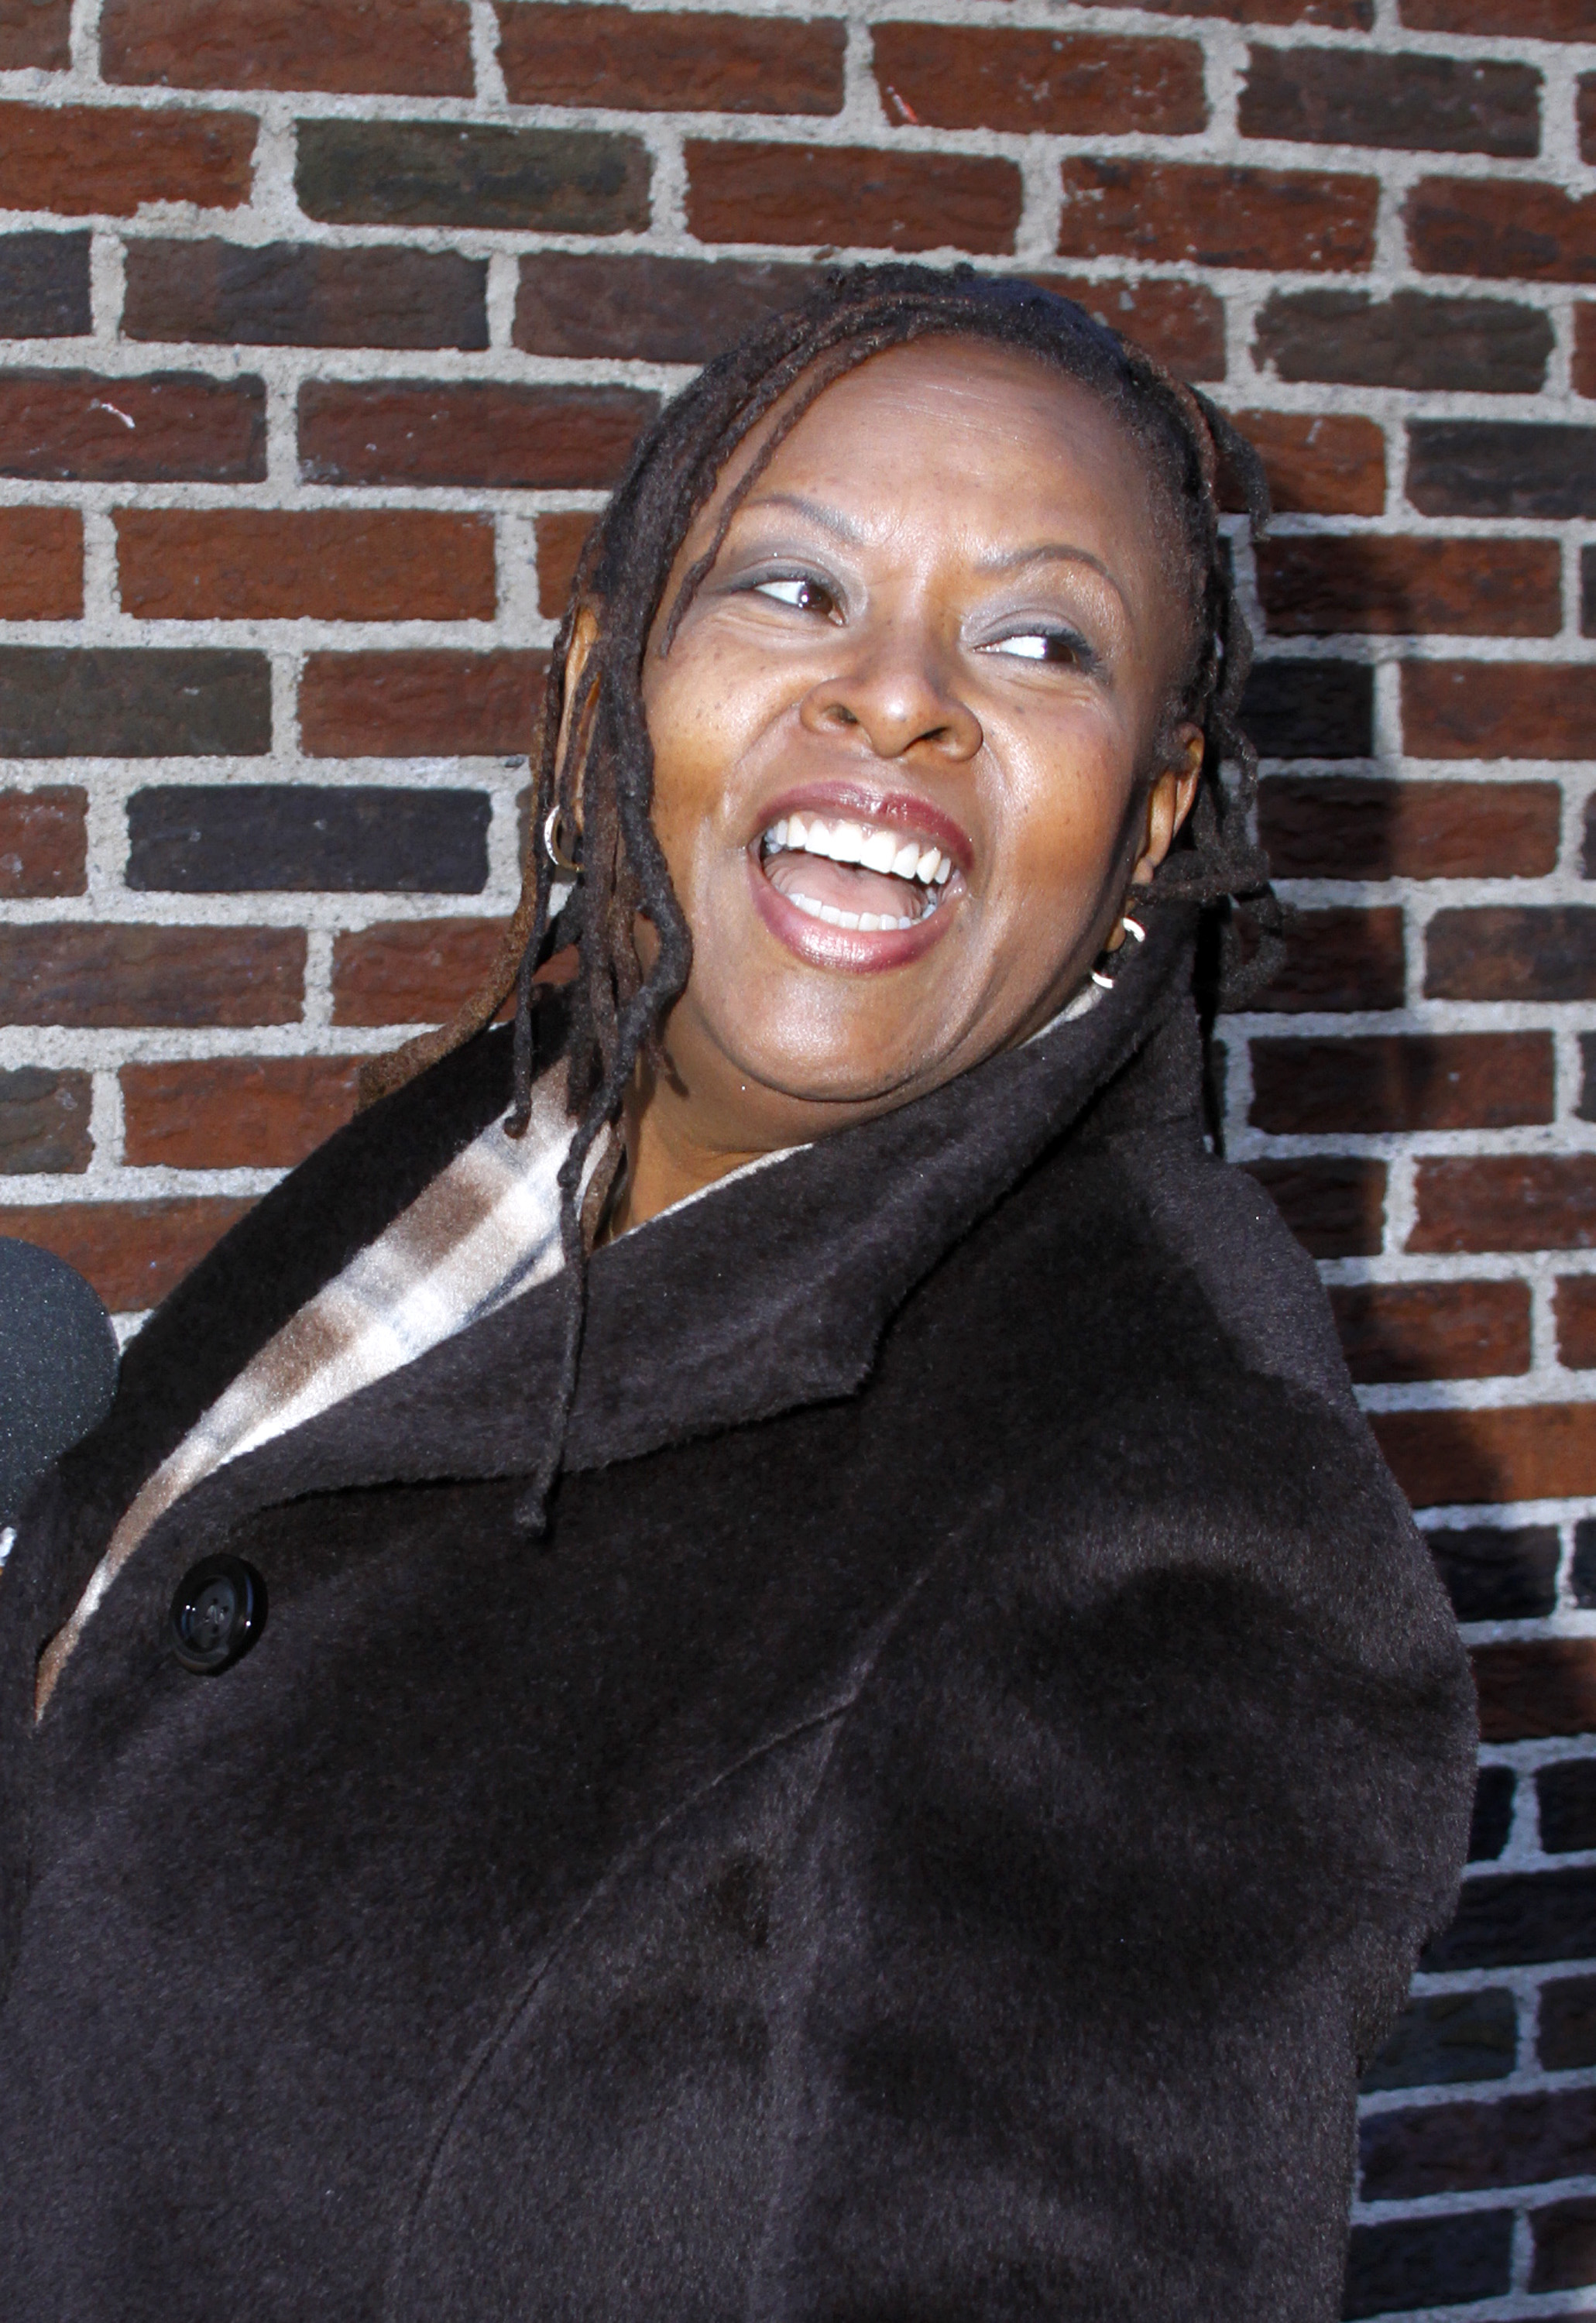 b66a44fab86 How Howard Stern s Sidekick Robin Quivers Beat Cancer and Found the ...